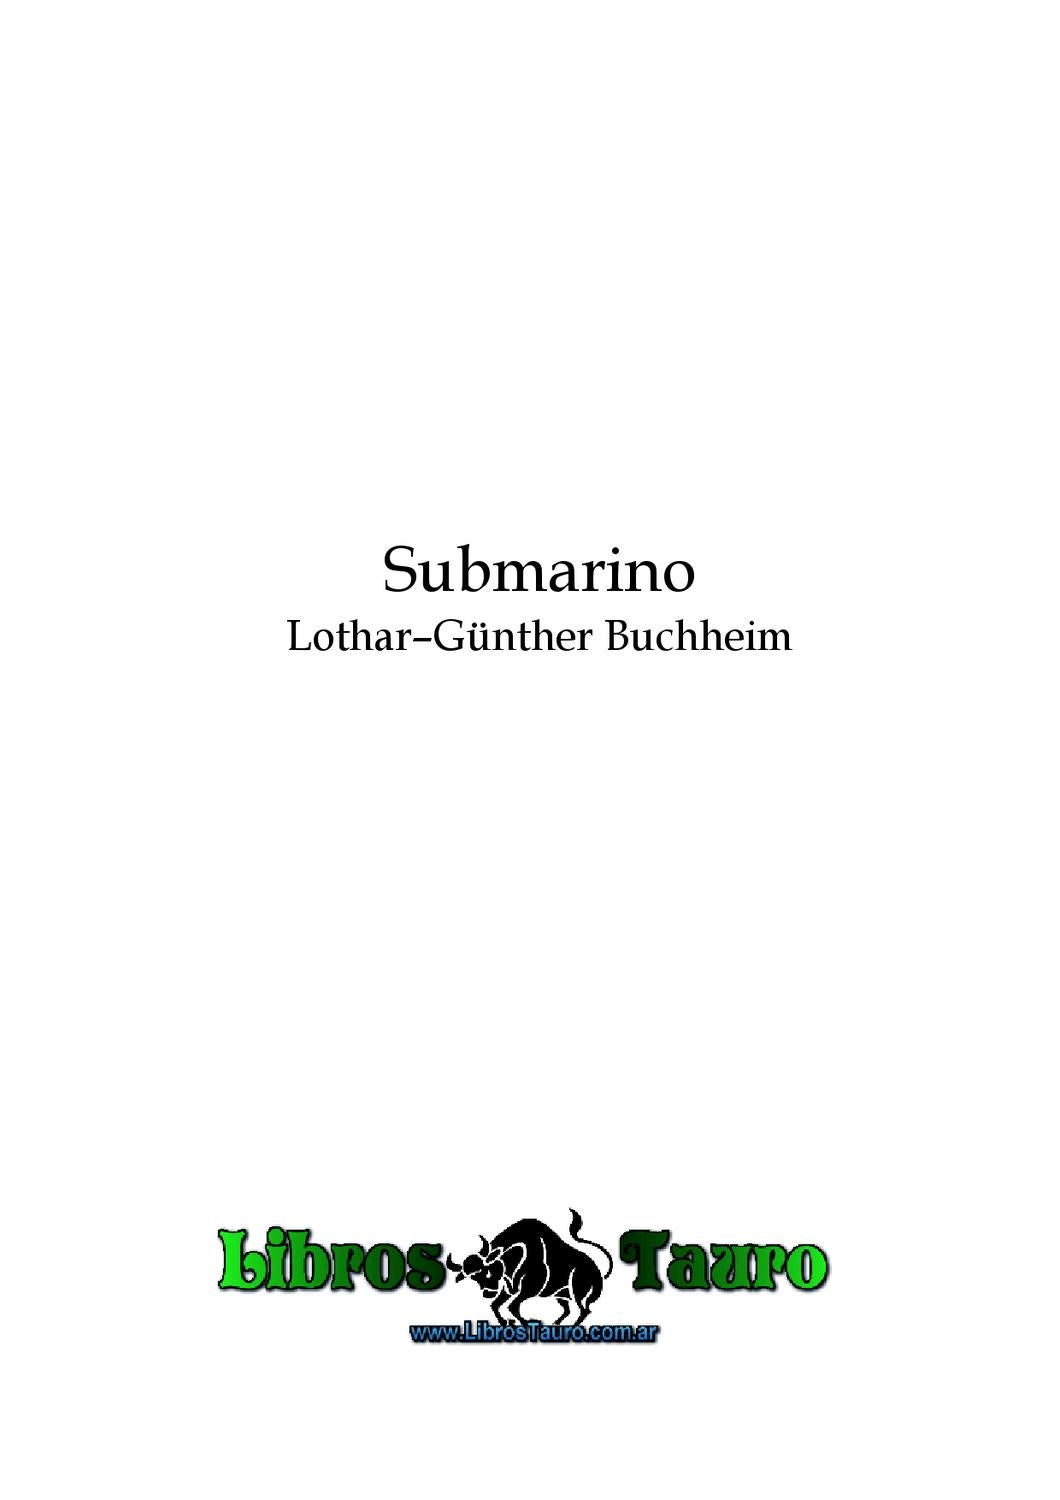 5259697a59d0 Submarino by Roberto VArgas - issuu